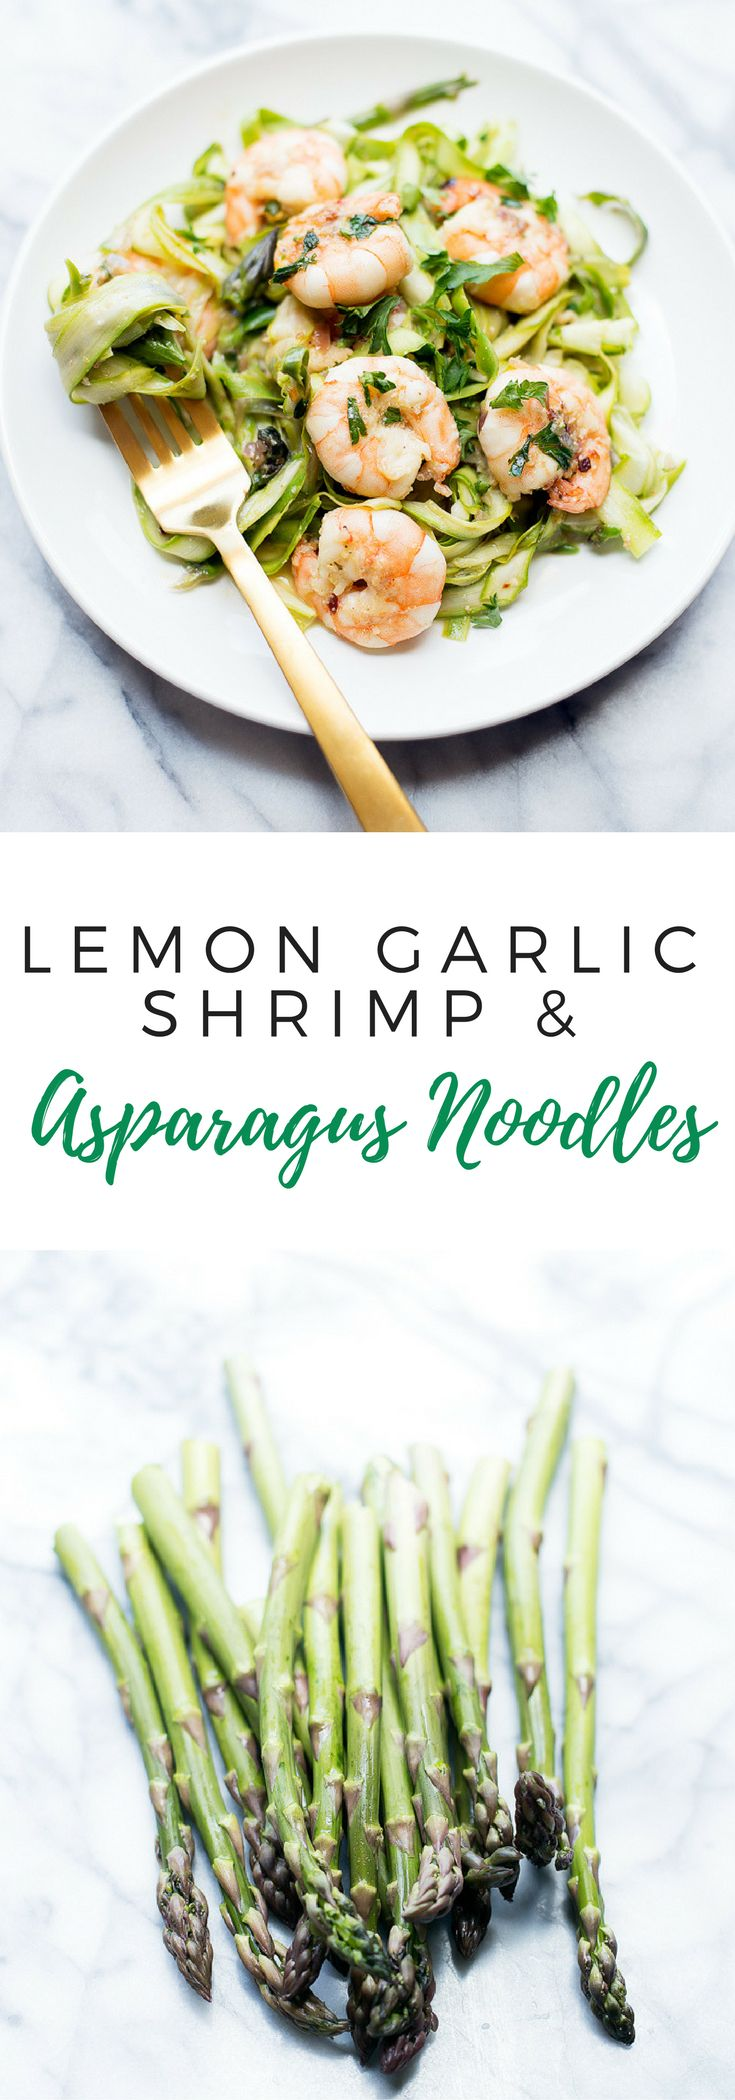 This lemon garlic shrimp with asparagus noodles is the perfect light summer dinner that is easy to make and comes together in minutes!